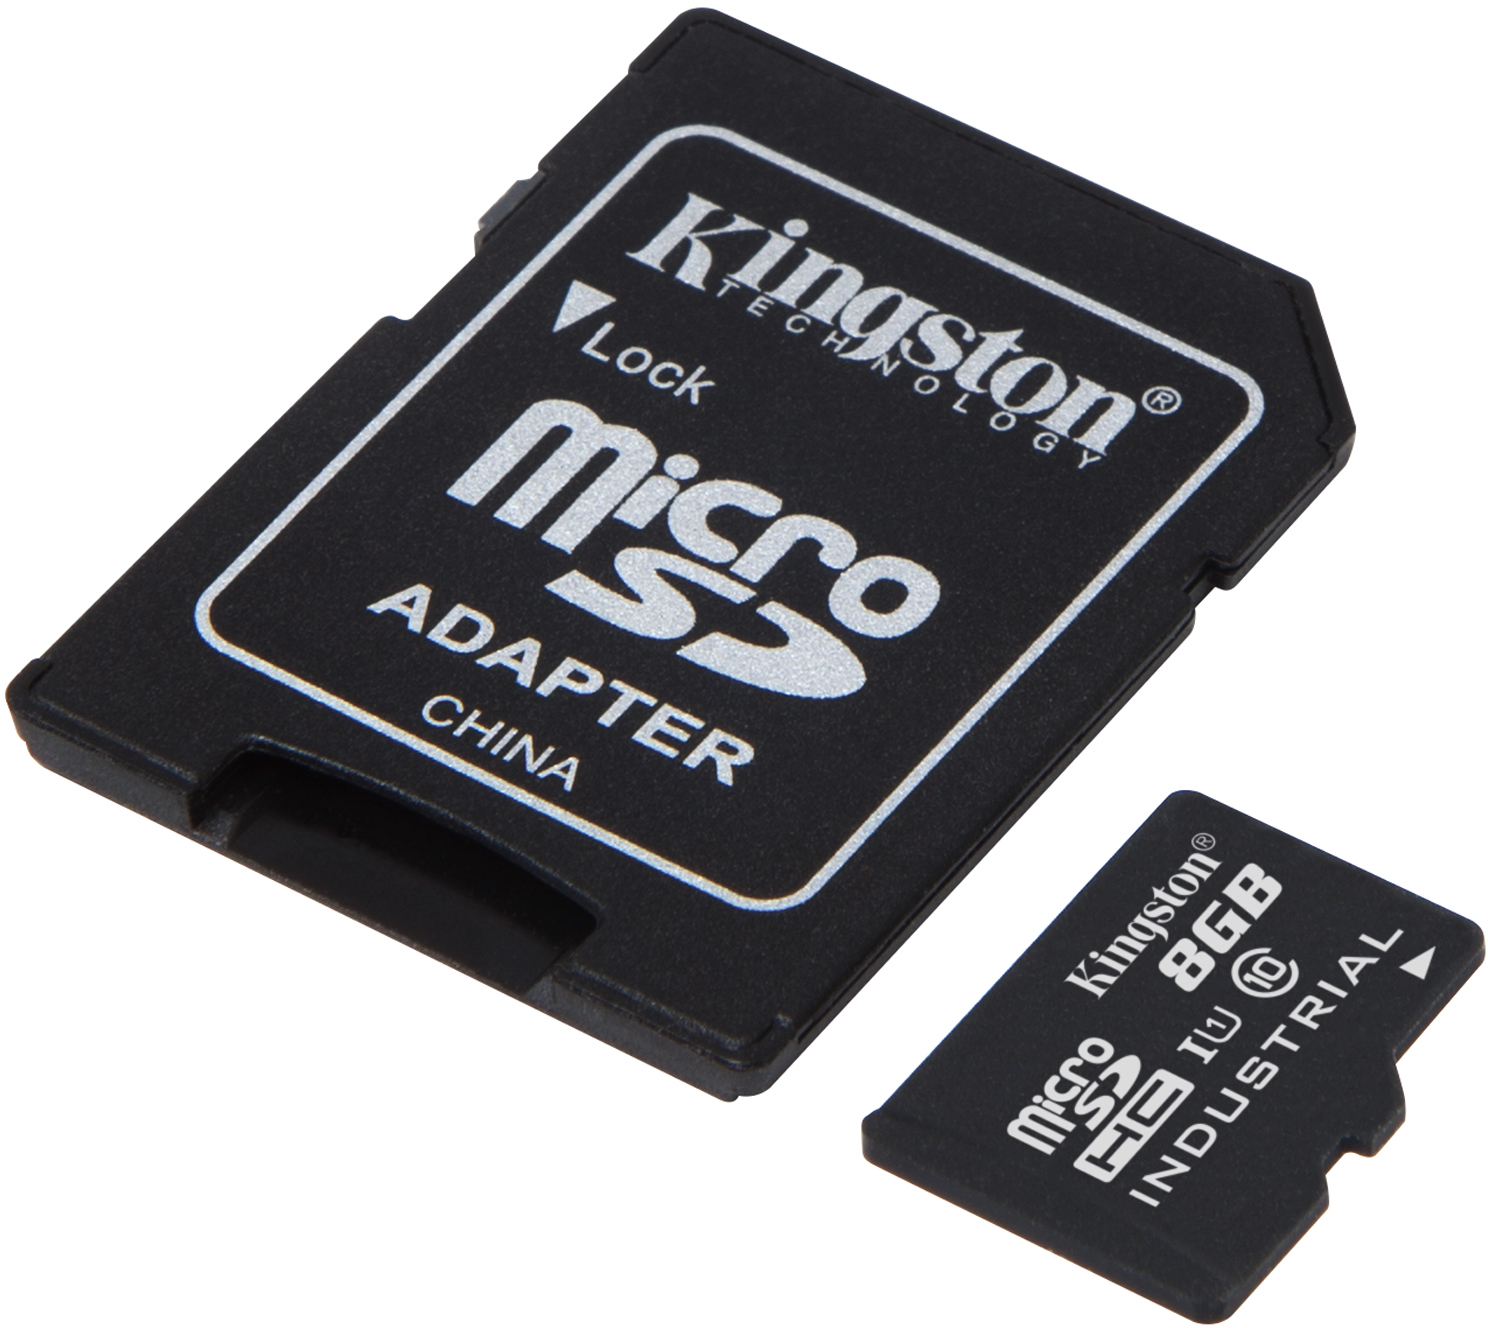 Card de memorie Kingston Micro SDHC UHS-I Temp Card 8GB Clasa 10